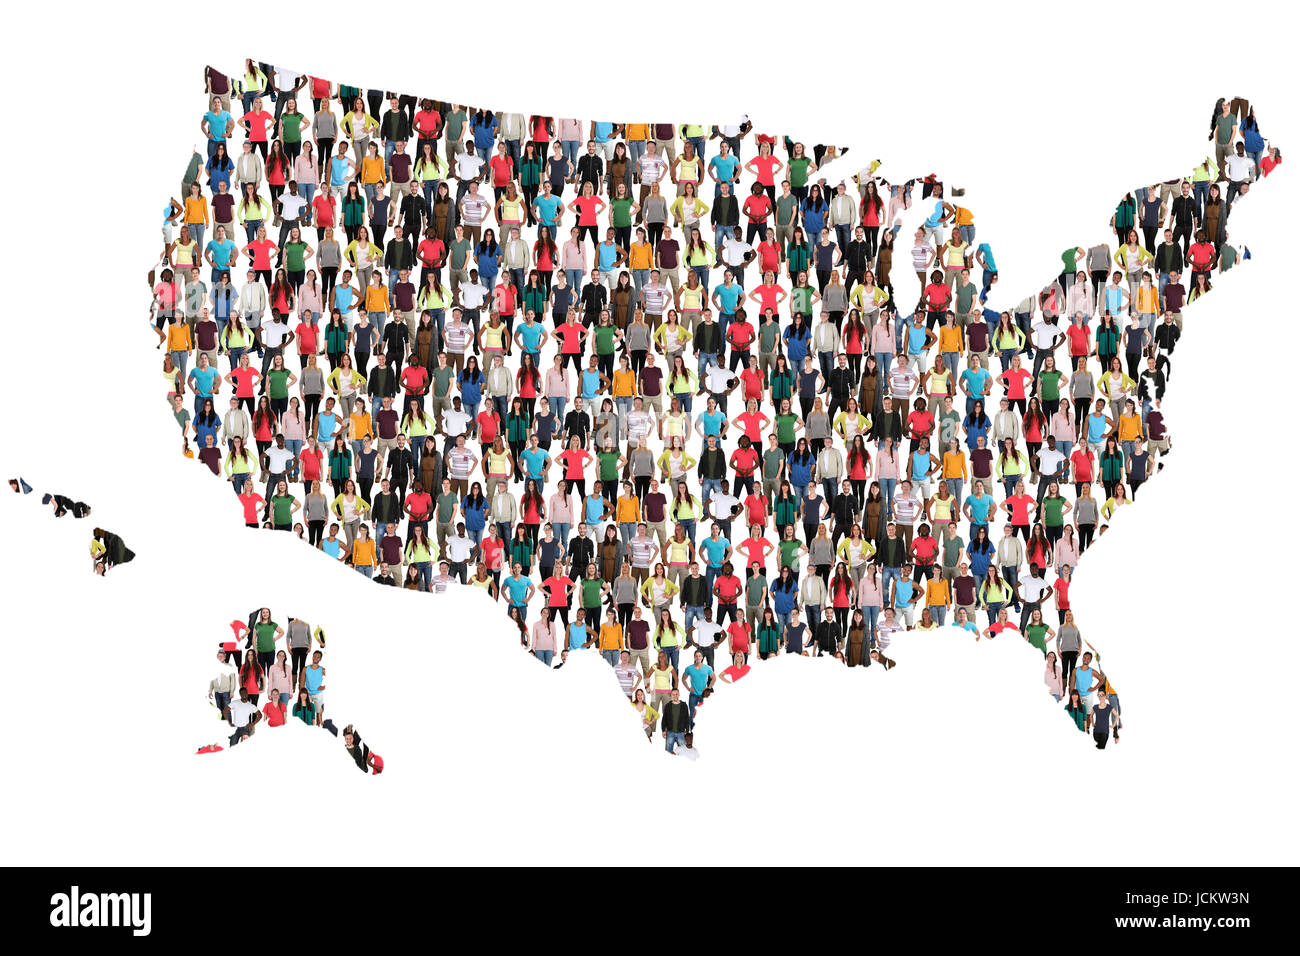 USA United States map multicultural group of people ... on east coast map, great lakes map, nevada map, the us map, florida map, caribbean map, the world map, mississippi map, blank map, us state map, 13 colonies map, arkansas map, africa map, missouri map, europe map, canada map, mexico map, full size us map, tennessee map, texas map,